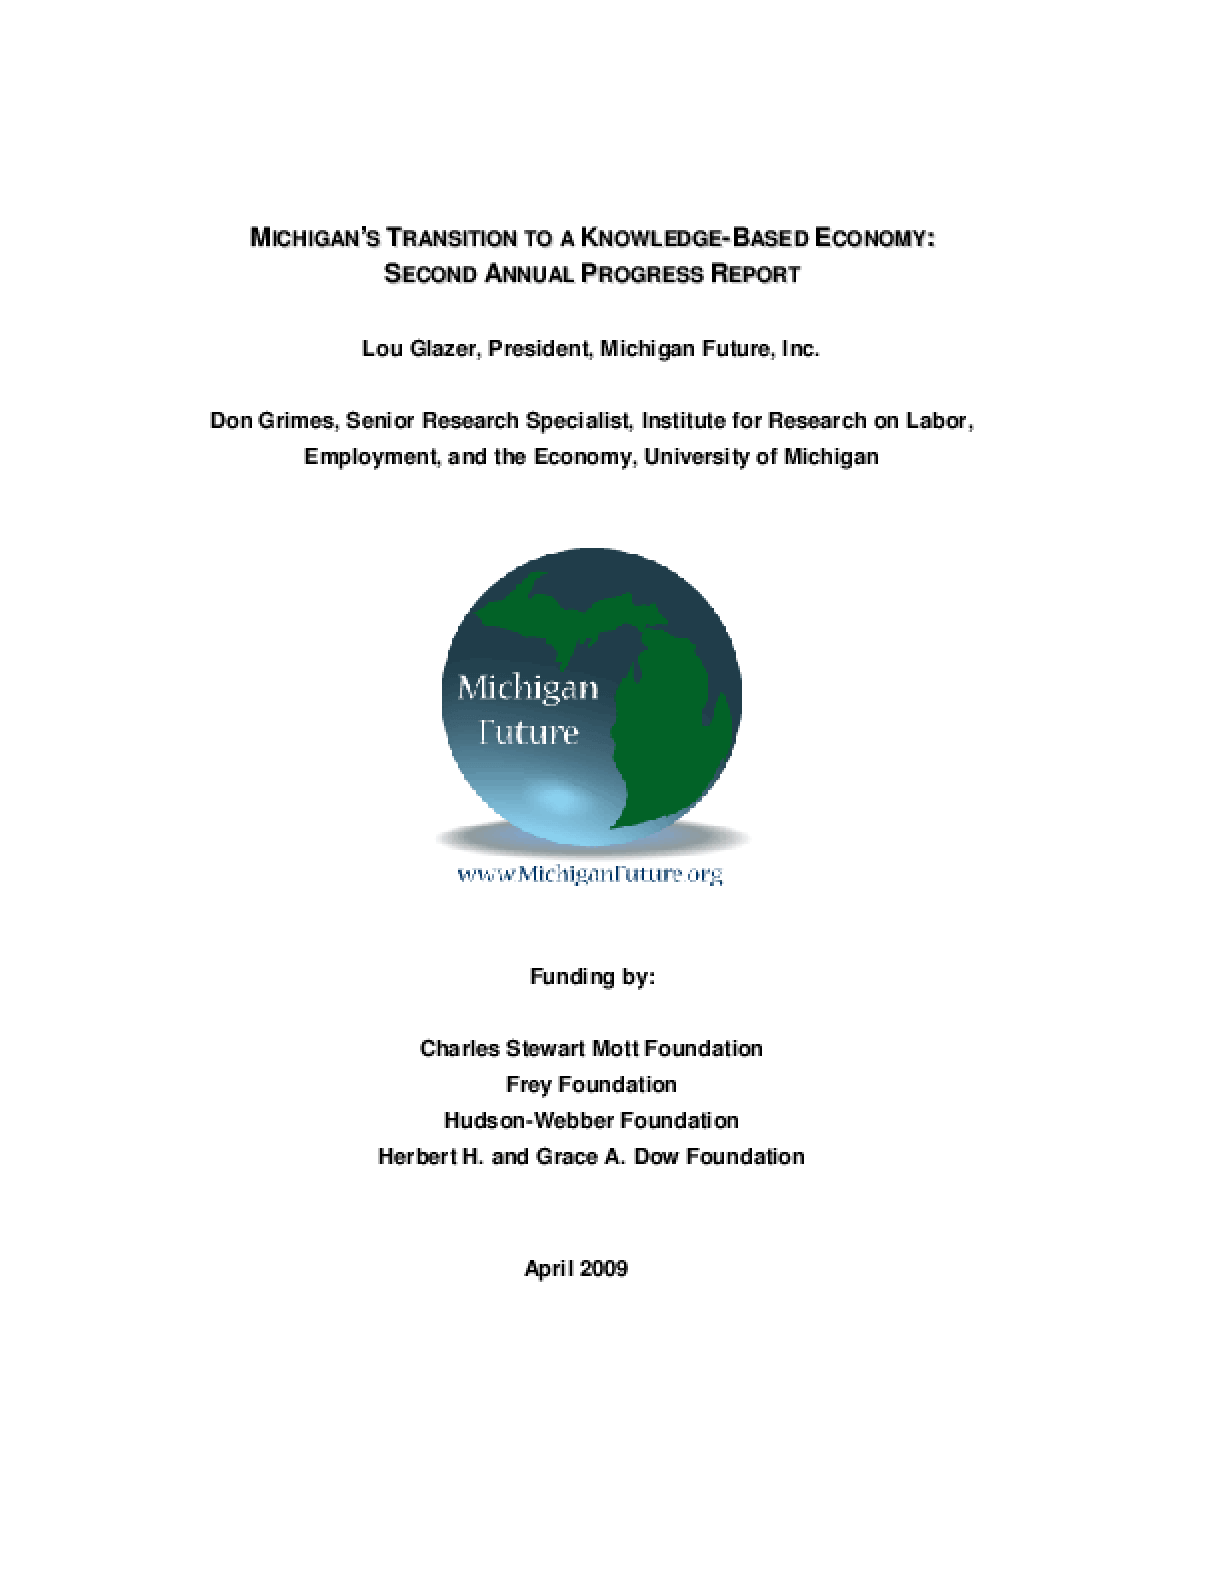 Michigan's Transition to a Knowledge-Based Economy: Second Annual Progress Report